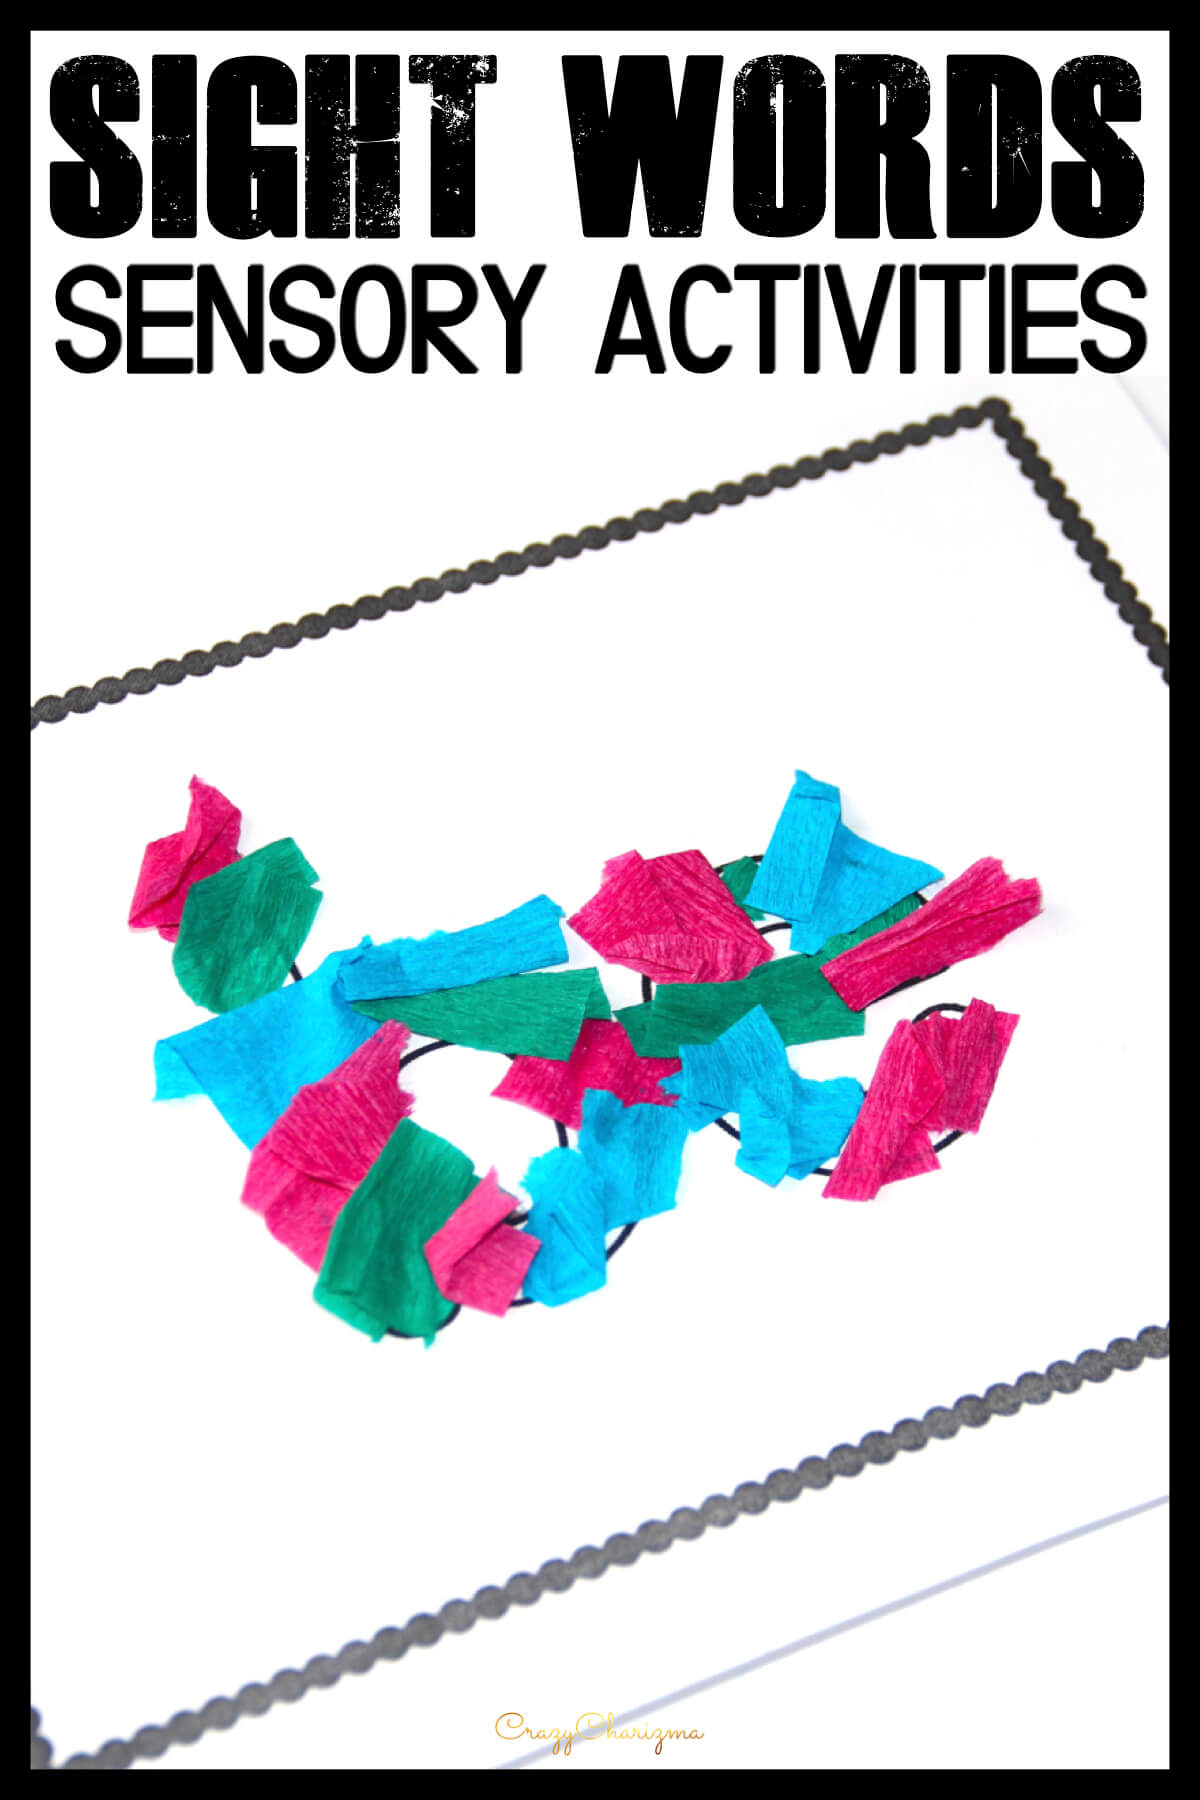 Sight words activities and games (freebies included): printables | hands on activities | technology to teach sight words | sight words apps | sensory activities | ways to use art | active ways to practice sight words | videos and songs to teach sight words | reading games | writing practice | center ideas|